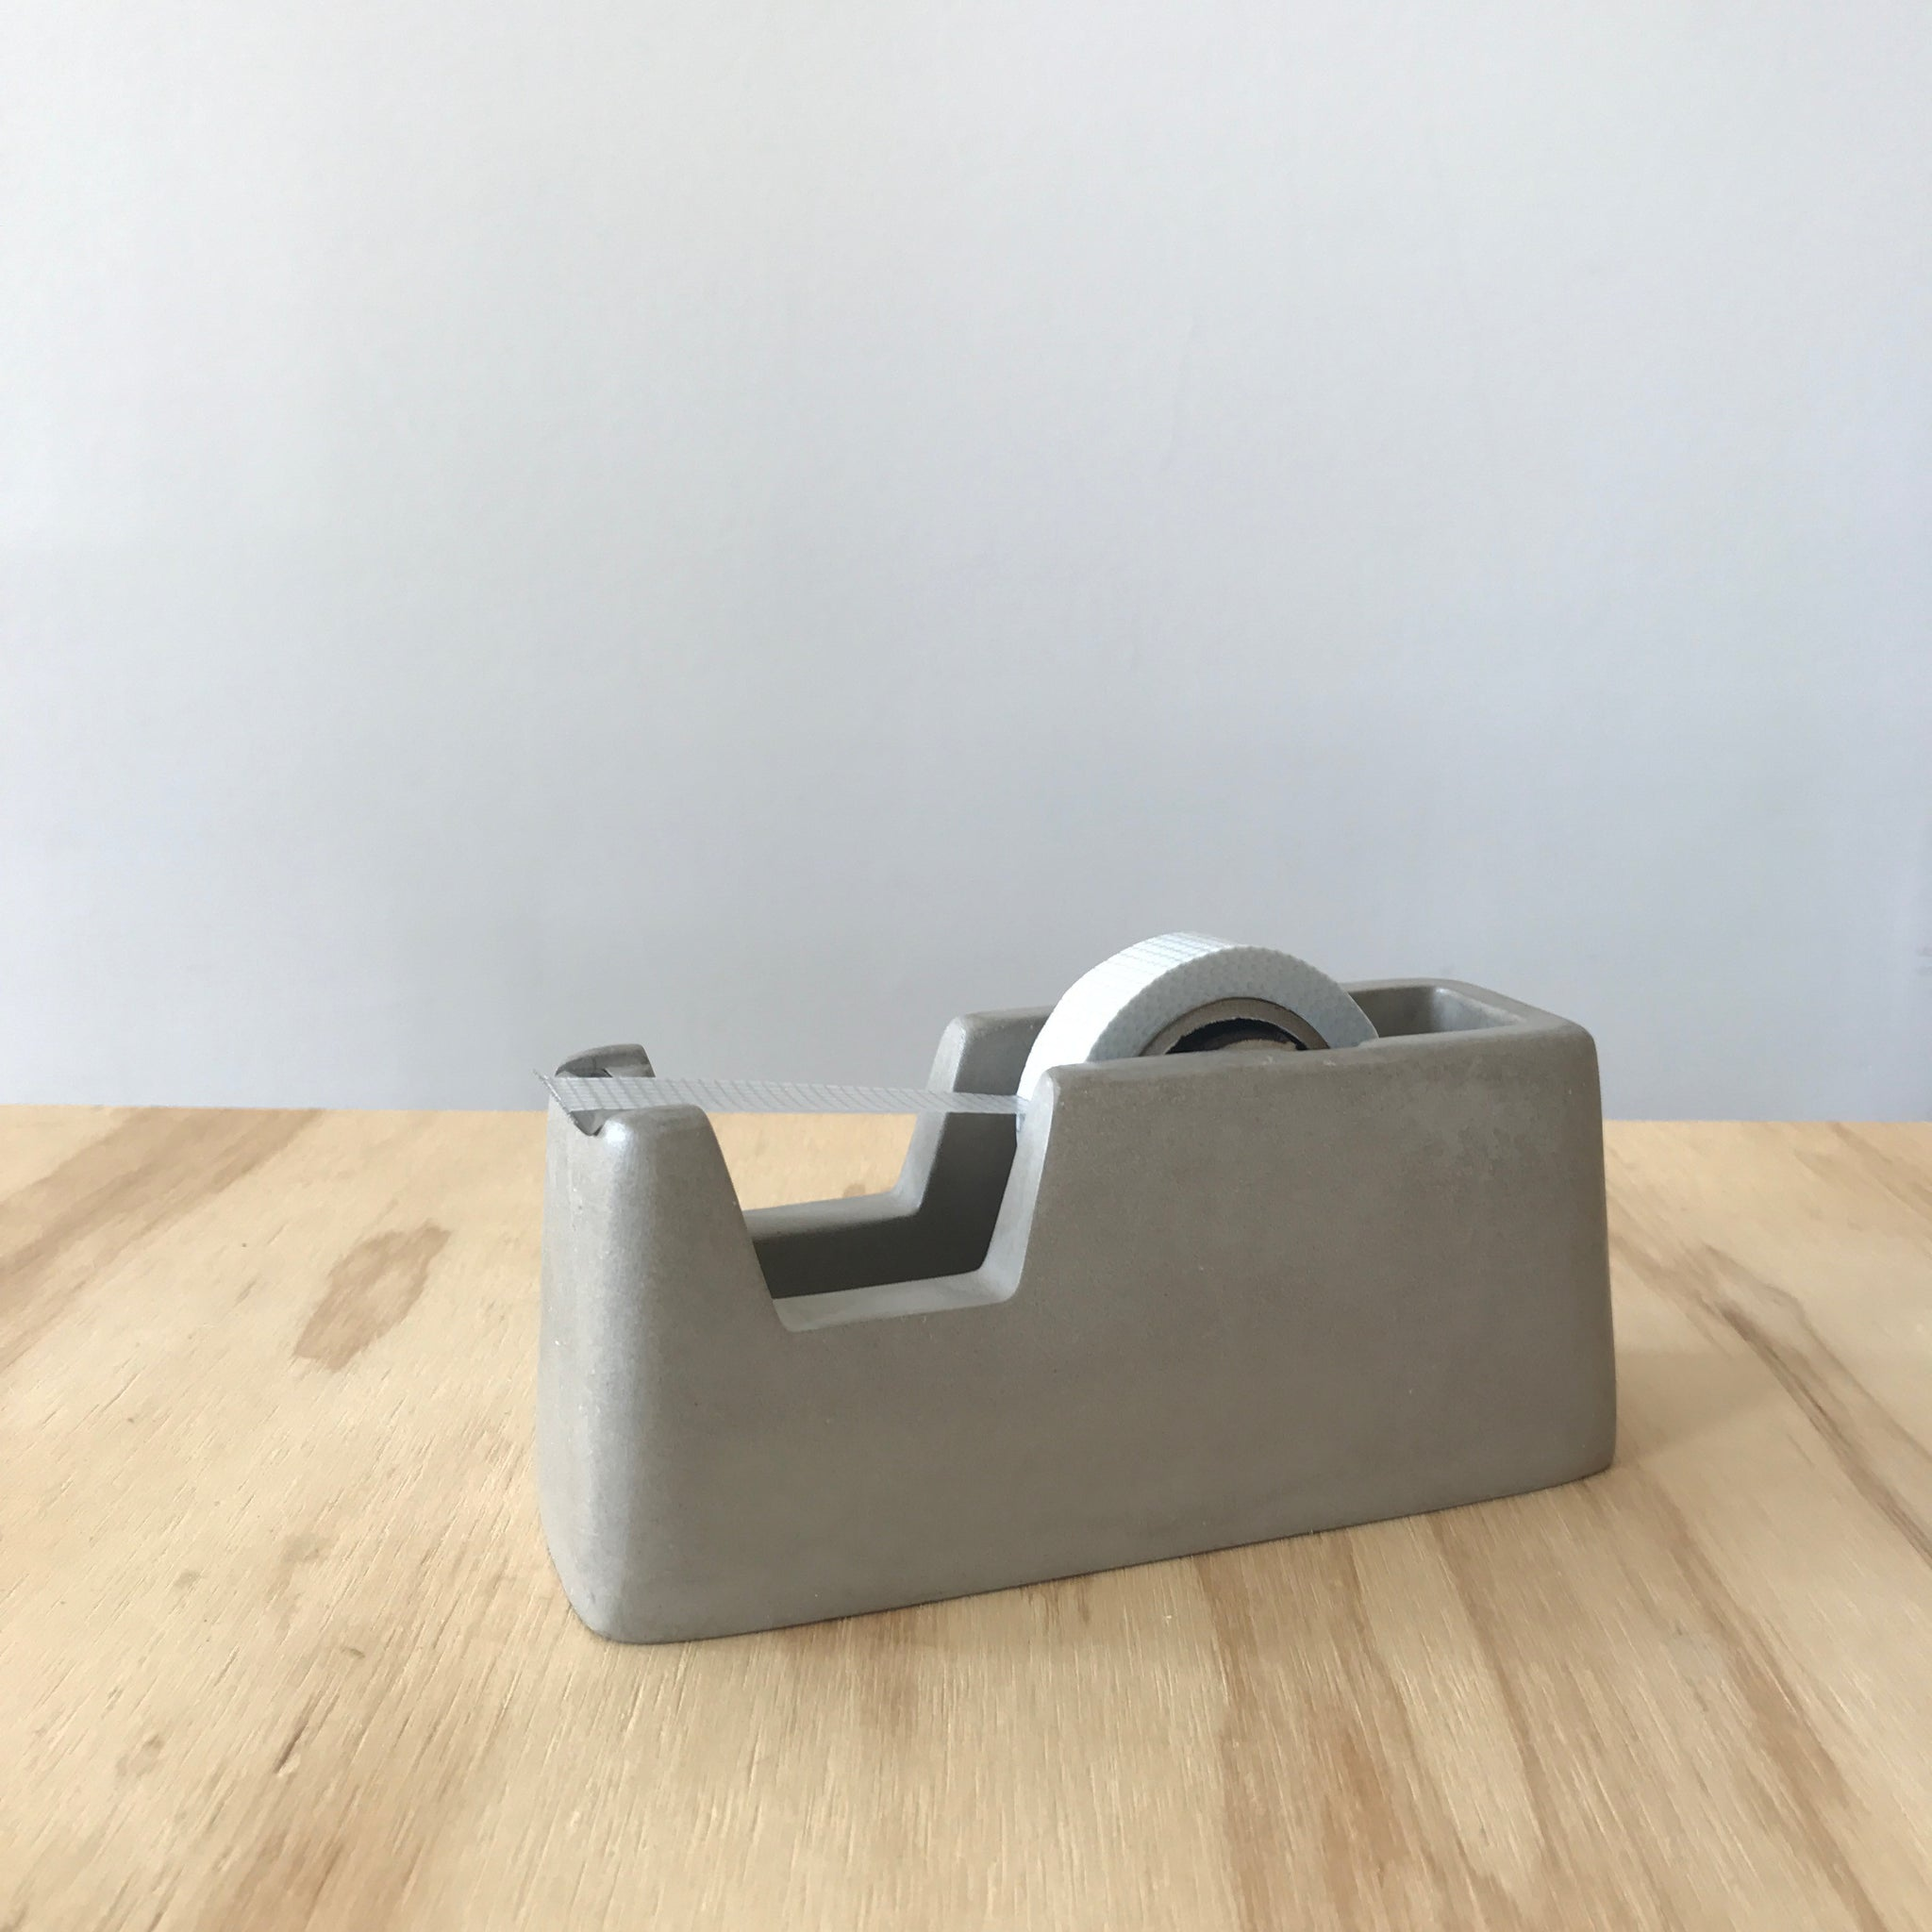 Concrete Tape Dispenser by Magnus Pettersen for Areaware - Upstate MN